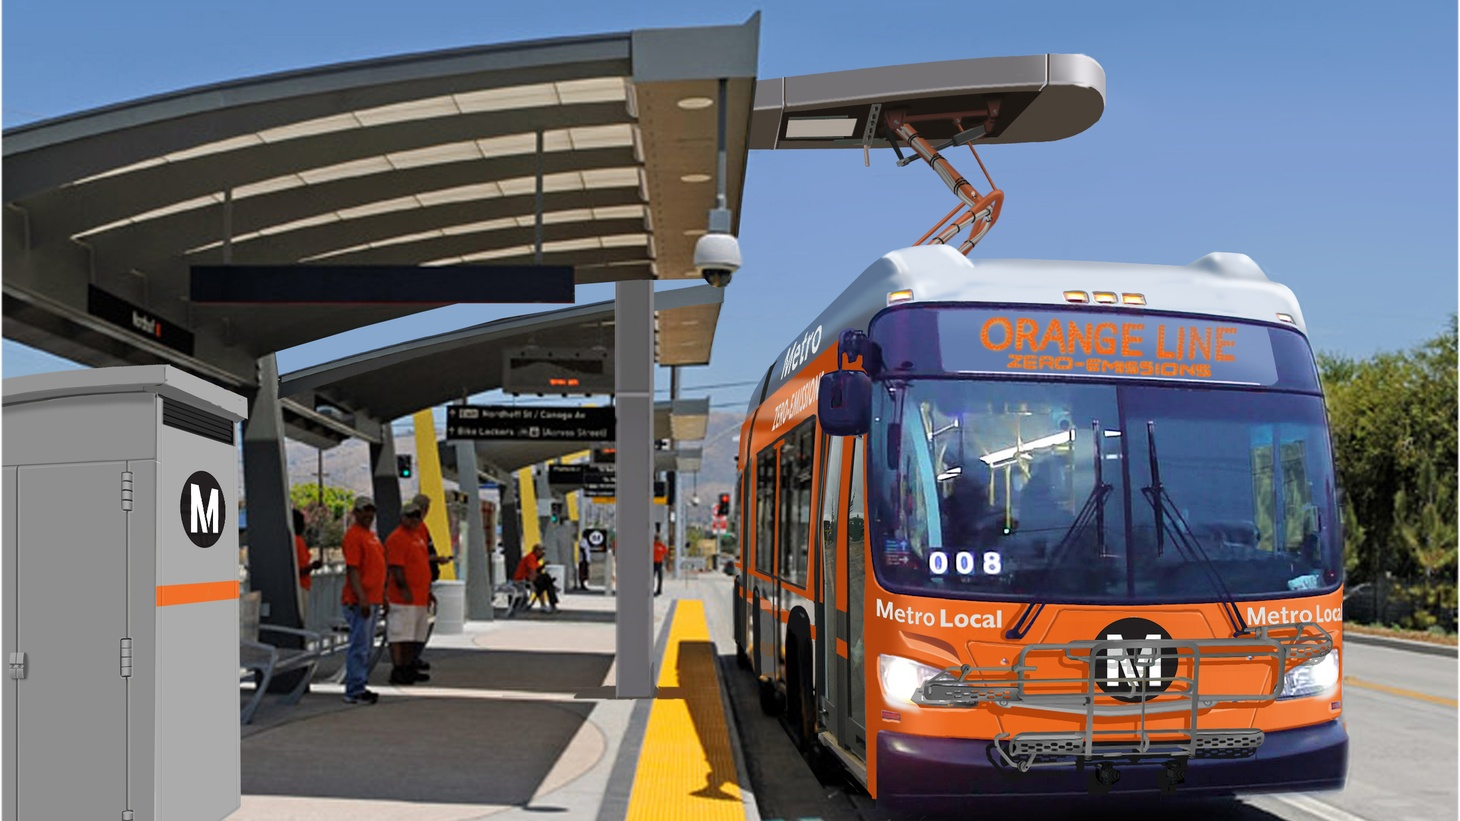 Los Angeles-based electric bus manufacturing companies aim to meet a growing demand for emission-free urban transit. And it's one thing to design a building, but it's another thing to build it. We pay tribute to the late Paul Matt, the construction giant who realized many Southern California landmarks.